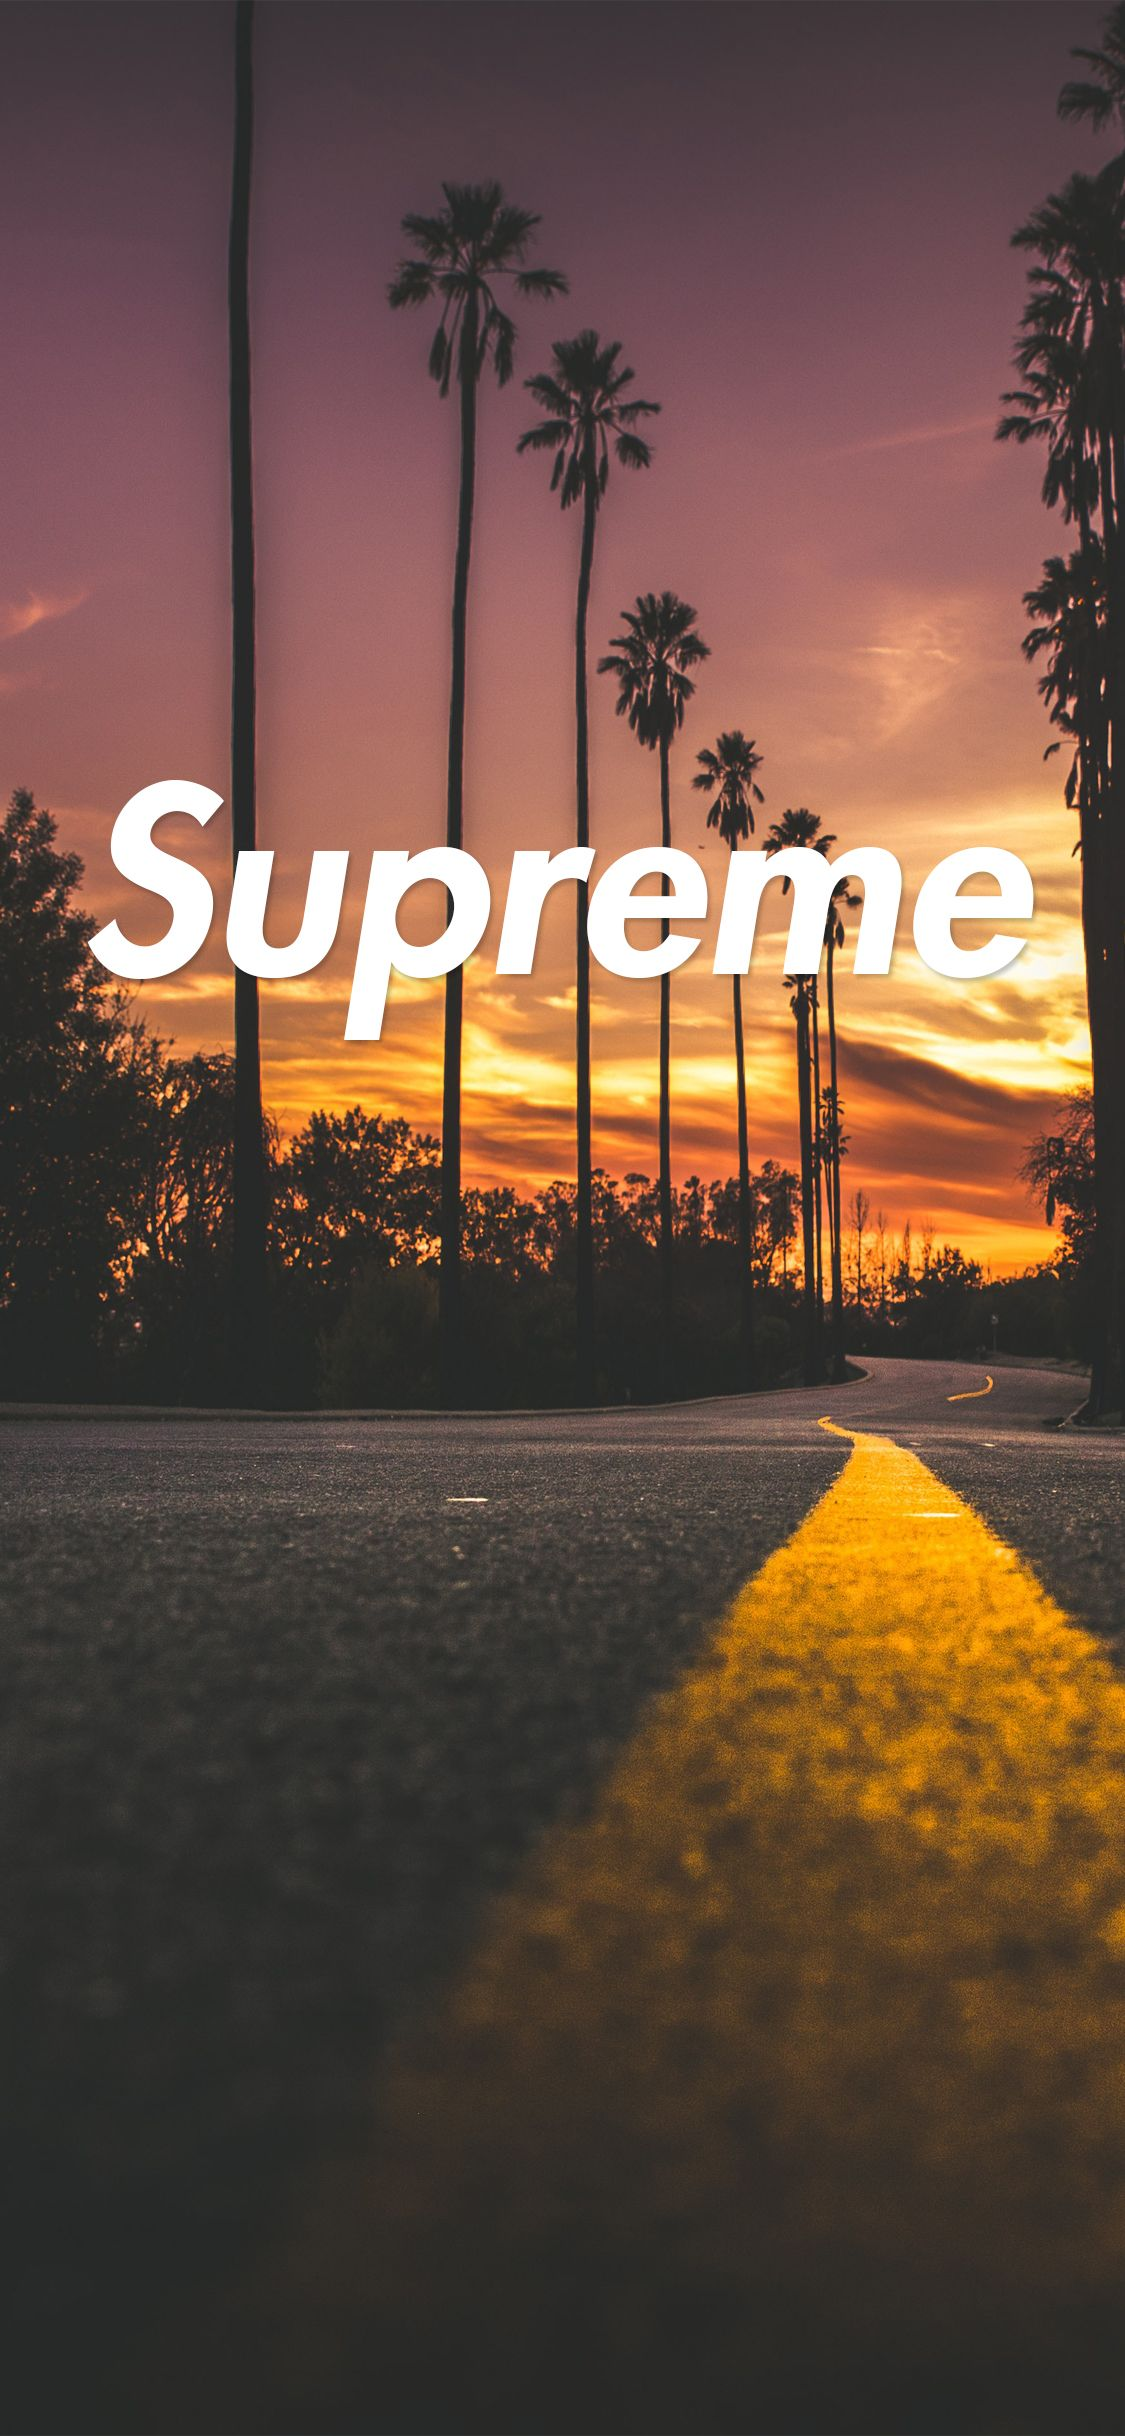 Supreme Cool wallpaper iphone cute Fondos para